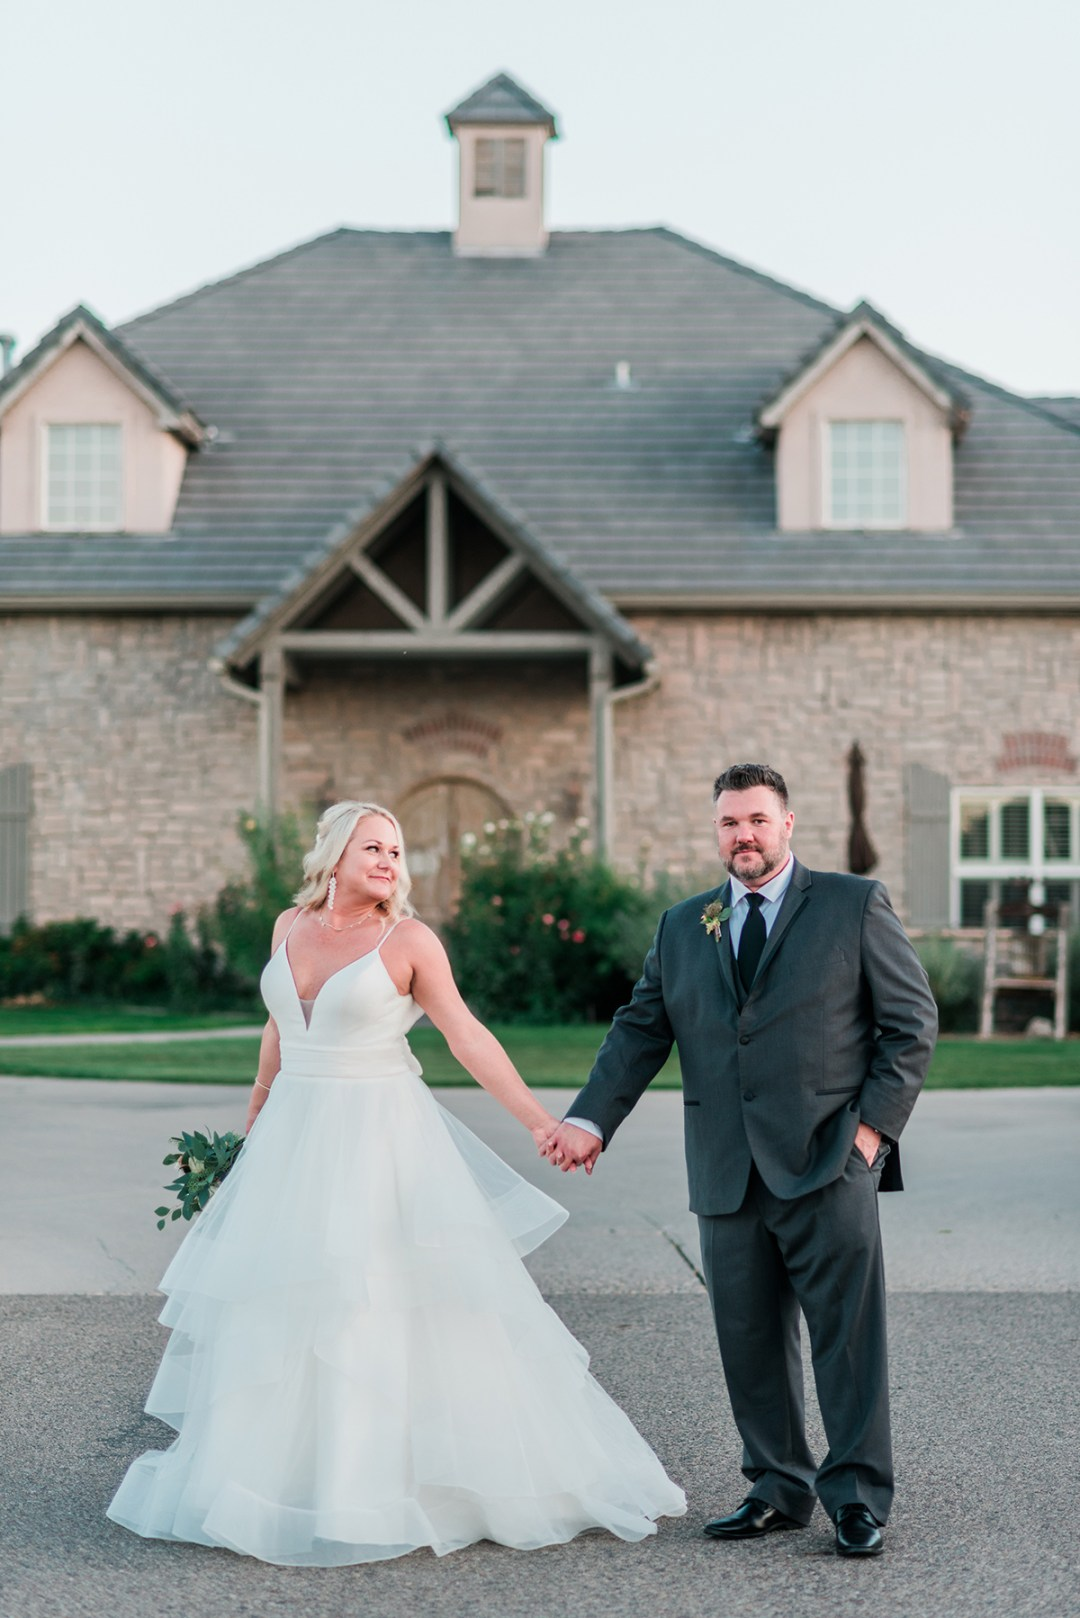 Julie & Derek | Wedding at Two Rivers Winery